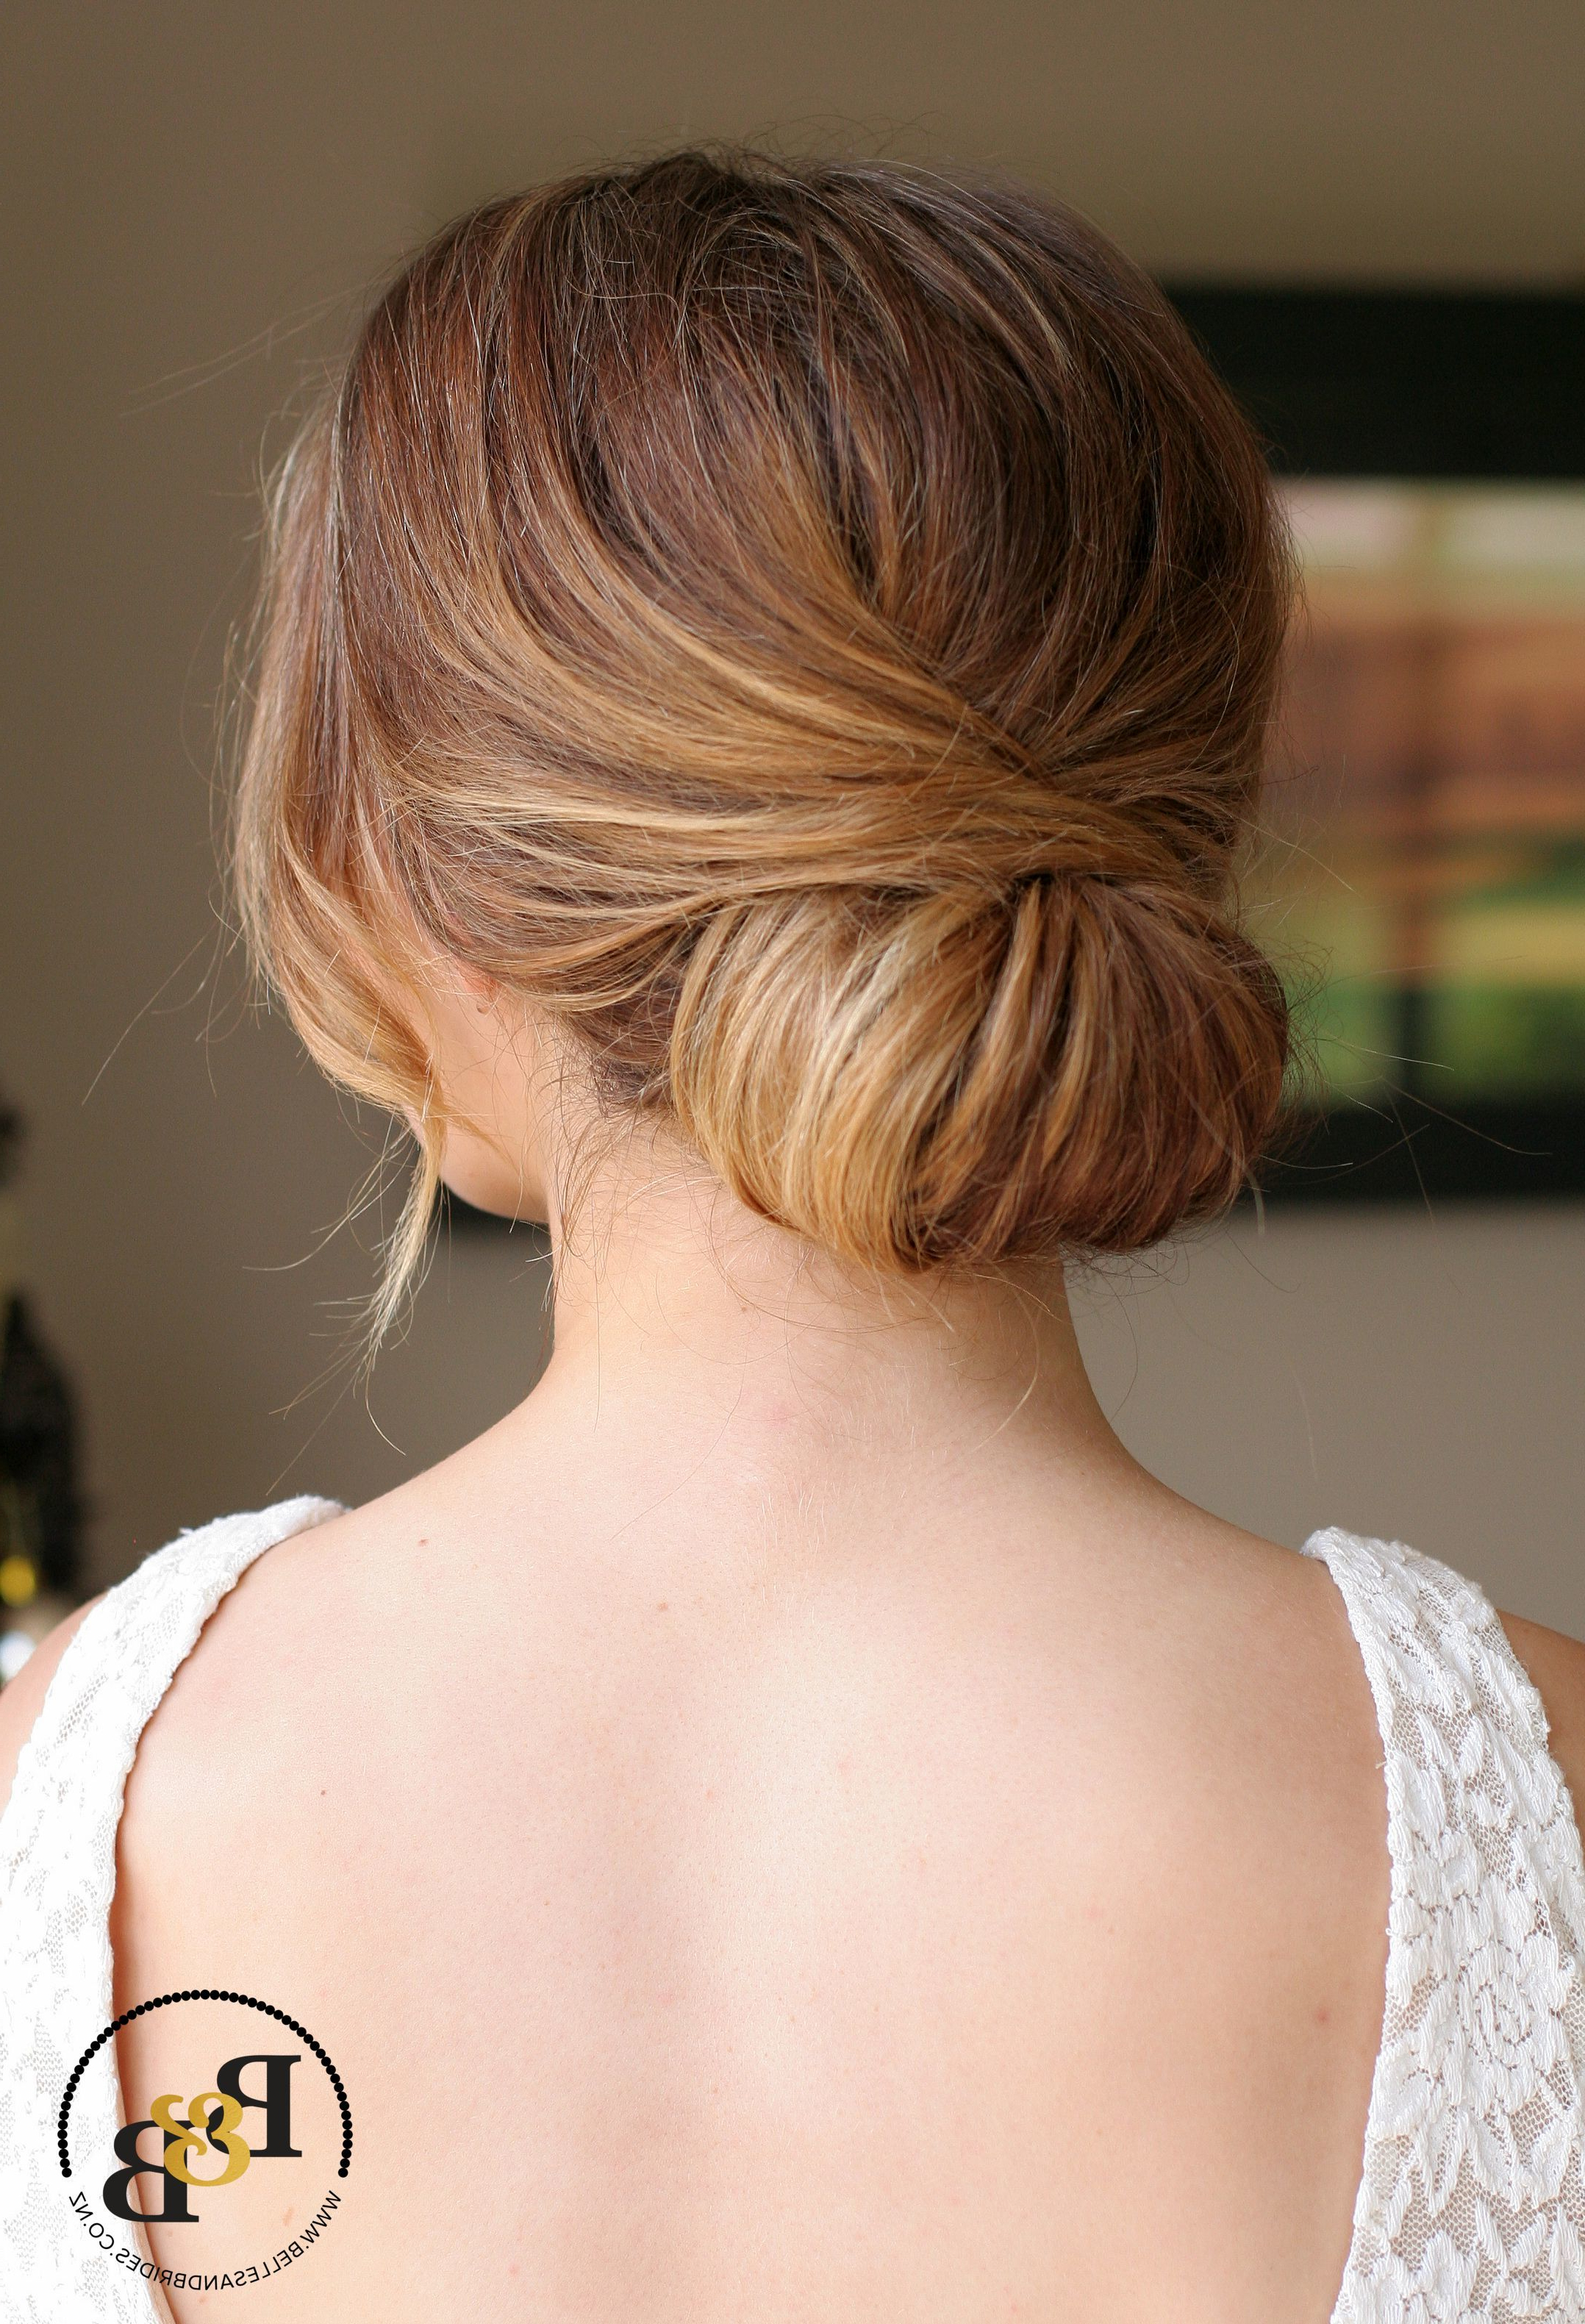 Wedding Hair Low Chignon / Casual Bridal Chignon / Soft Romantic Throughout 2018 Undone Low Bun Bridal Hairstyles With Floral Headband (View 14 of 20)